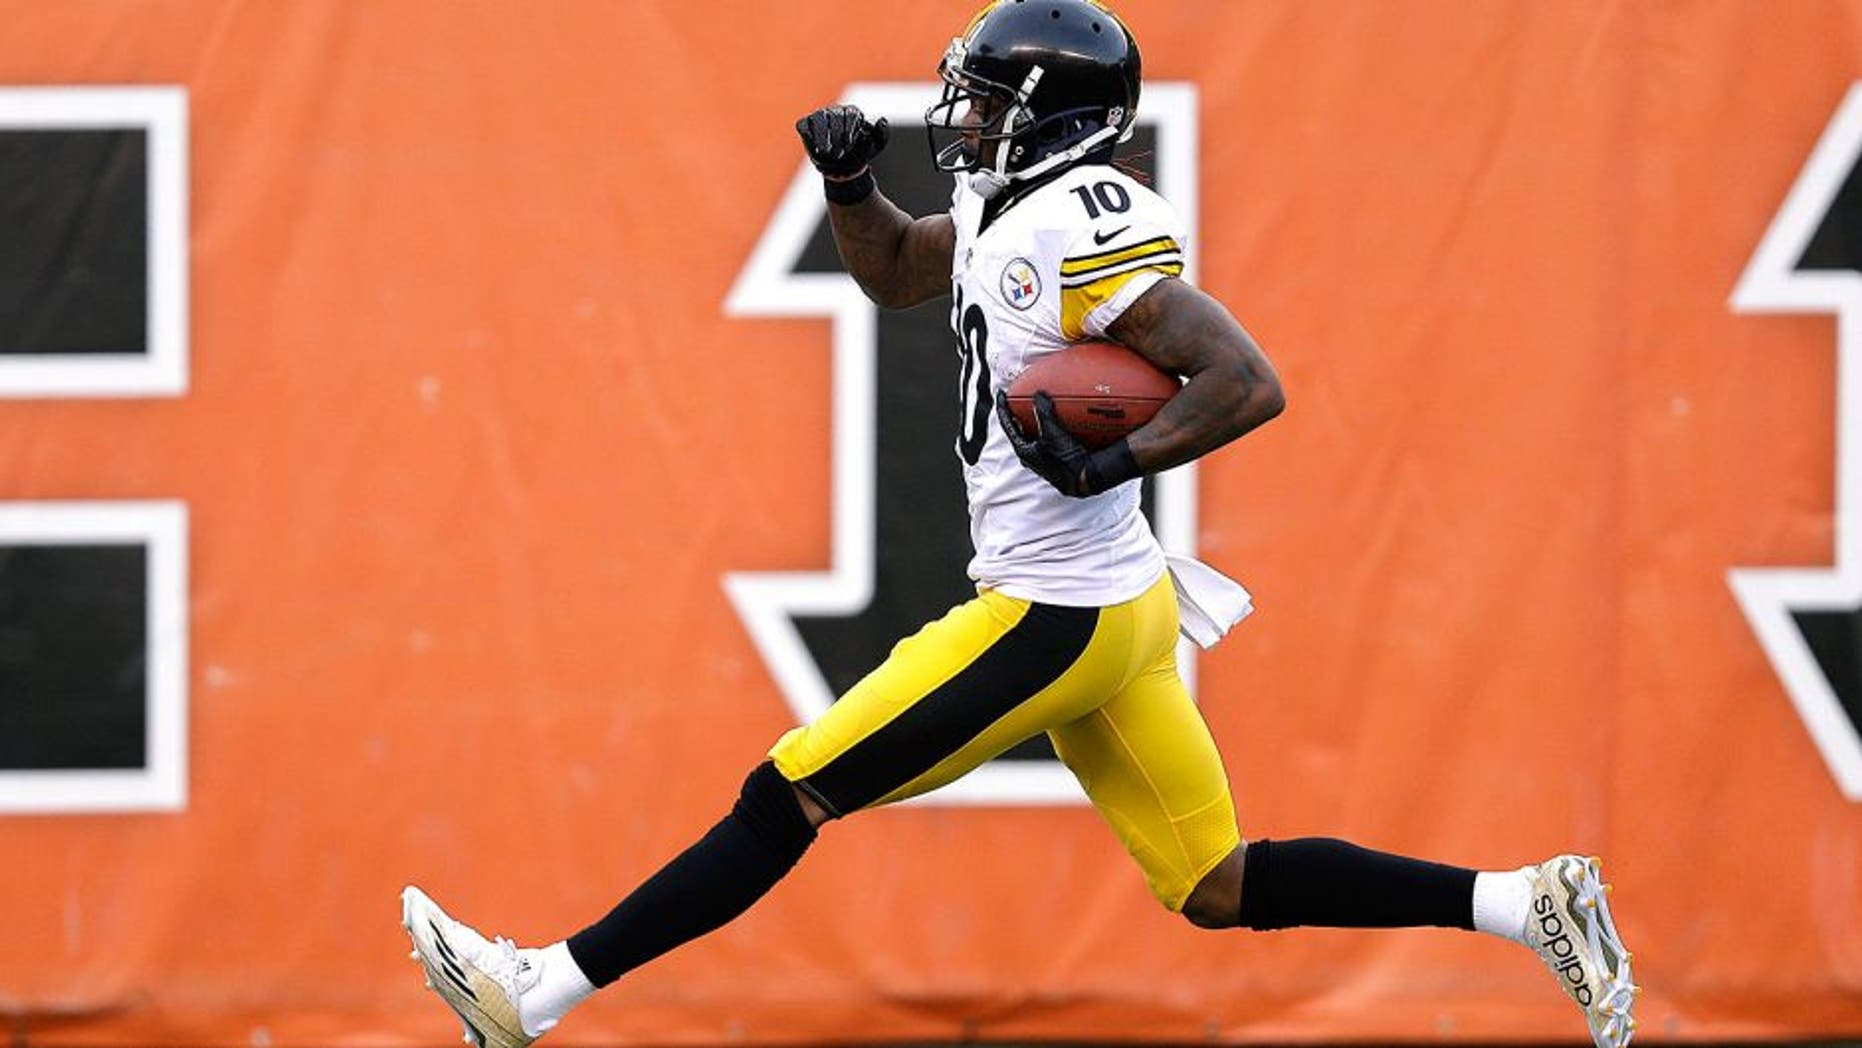 Pittsburgh Steelers wide receiver Martavis Bryant (10) runs for a 94-yard touchdown reception during the second half of an NFL football game against the Cincinnati Bengals Sunday, Dec. 7, 2014 in Cincinnati. (AP Photo/Michael Conroy)